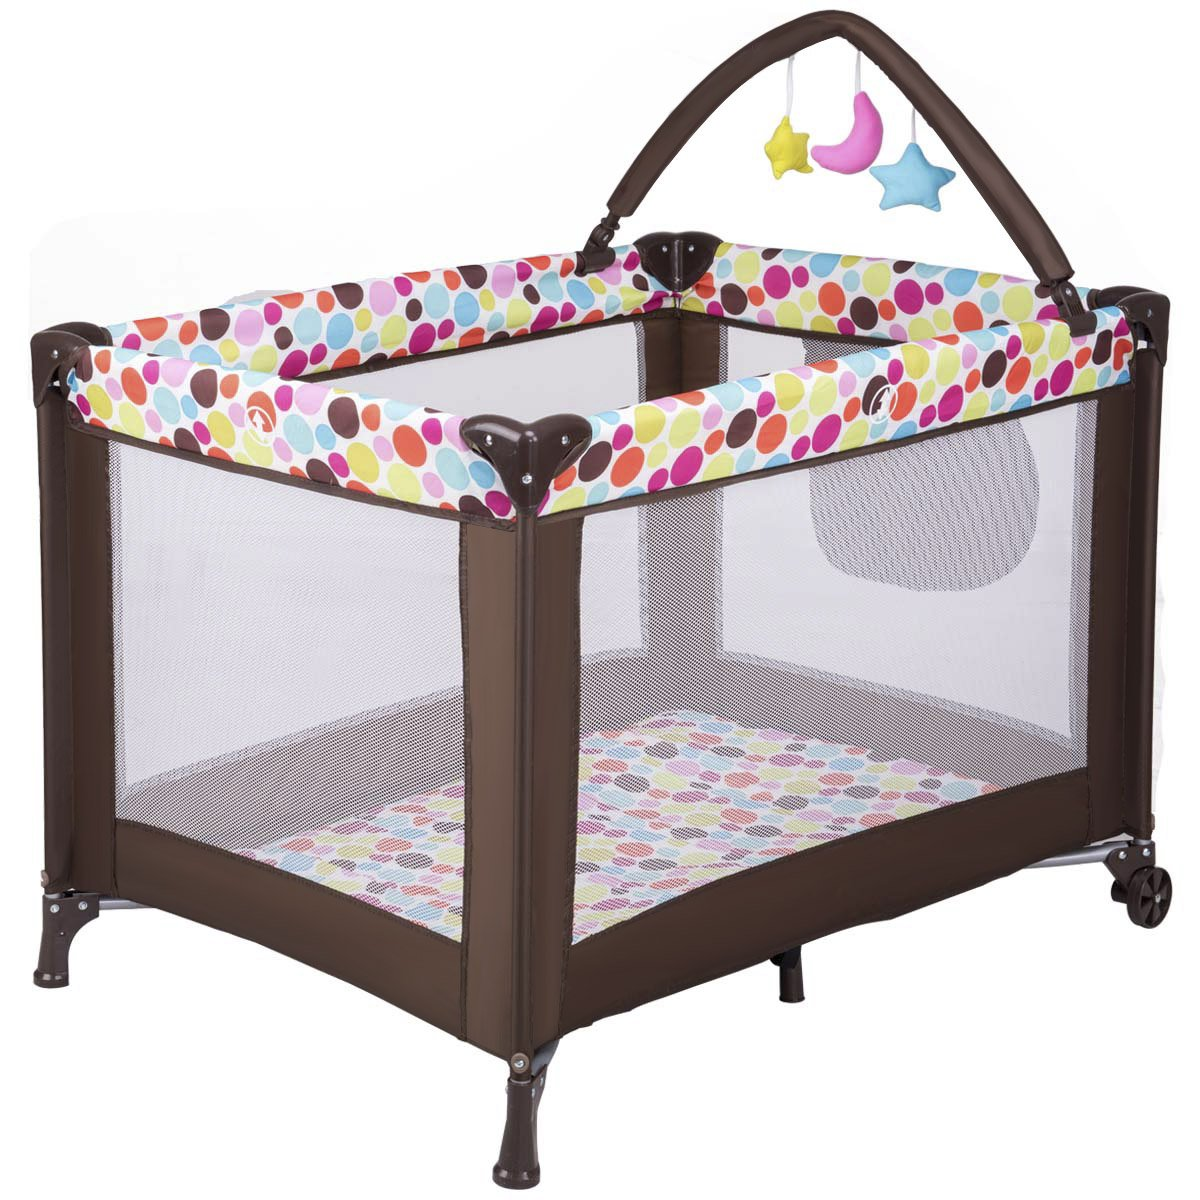 Costzon Play Playard Safety Bassinet for Baby On the Go, Portable and Foldable Play Yard w/Carry Bag